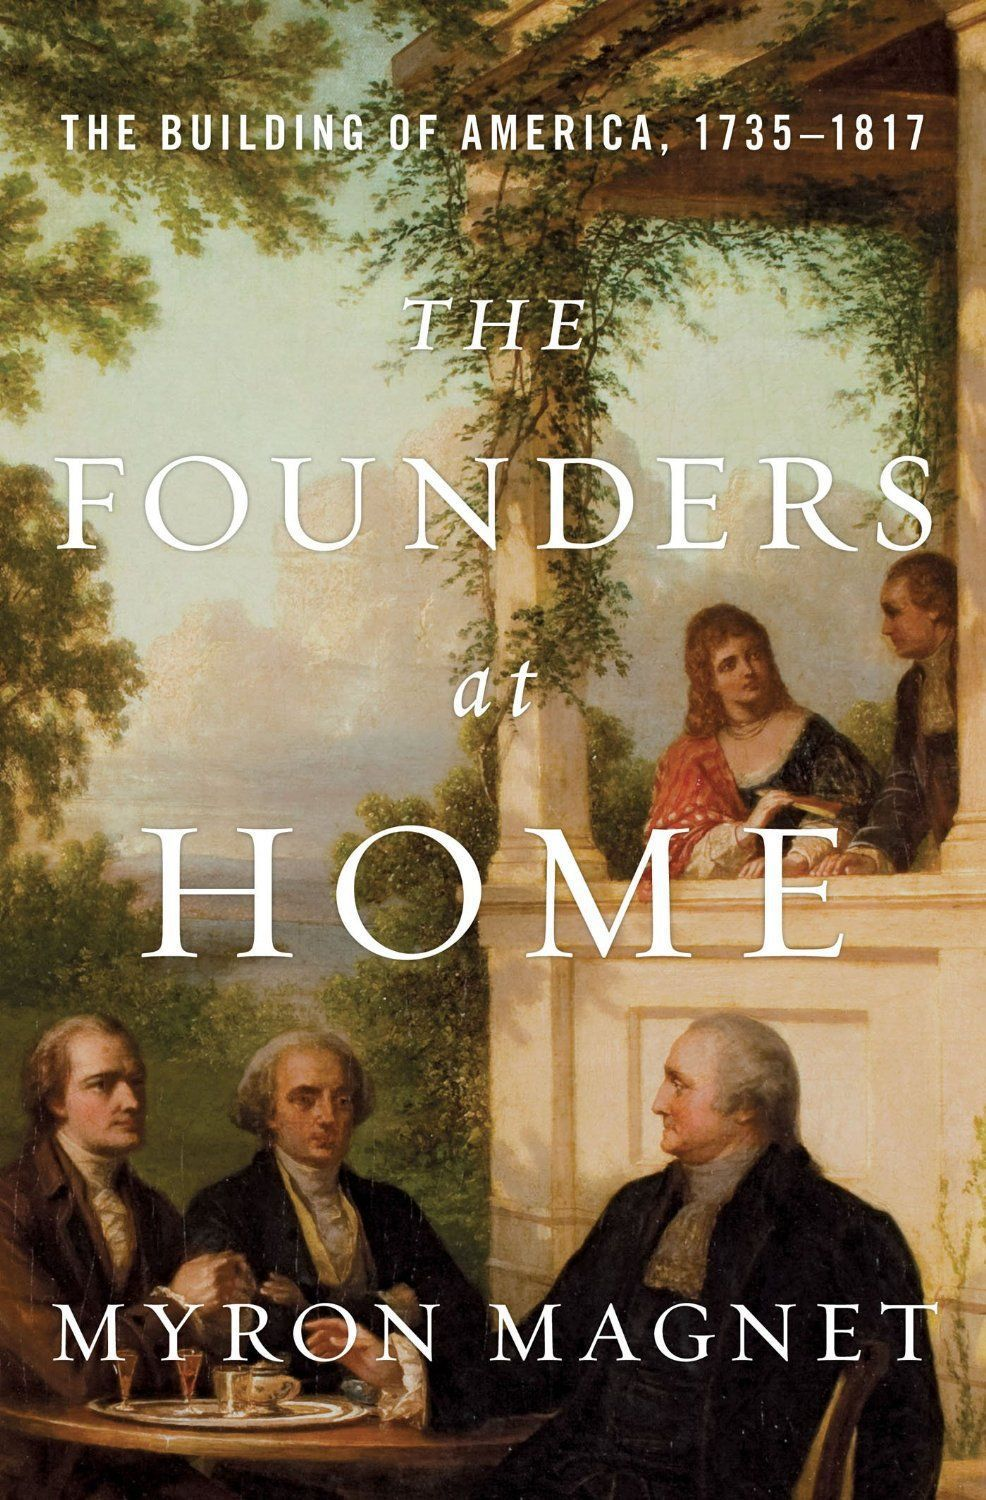 'The Founders at Home'